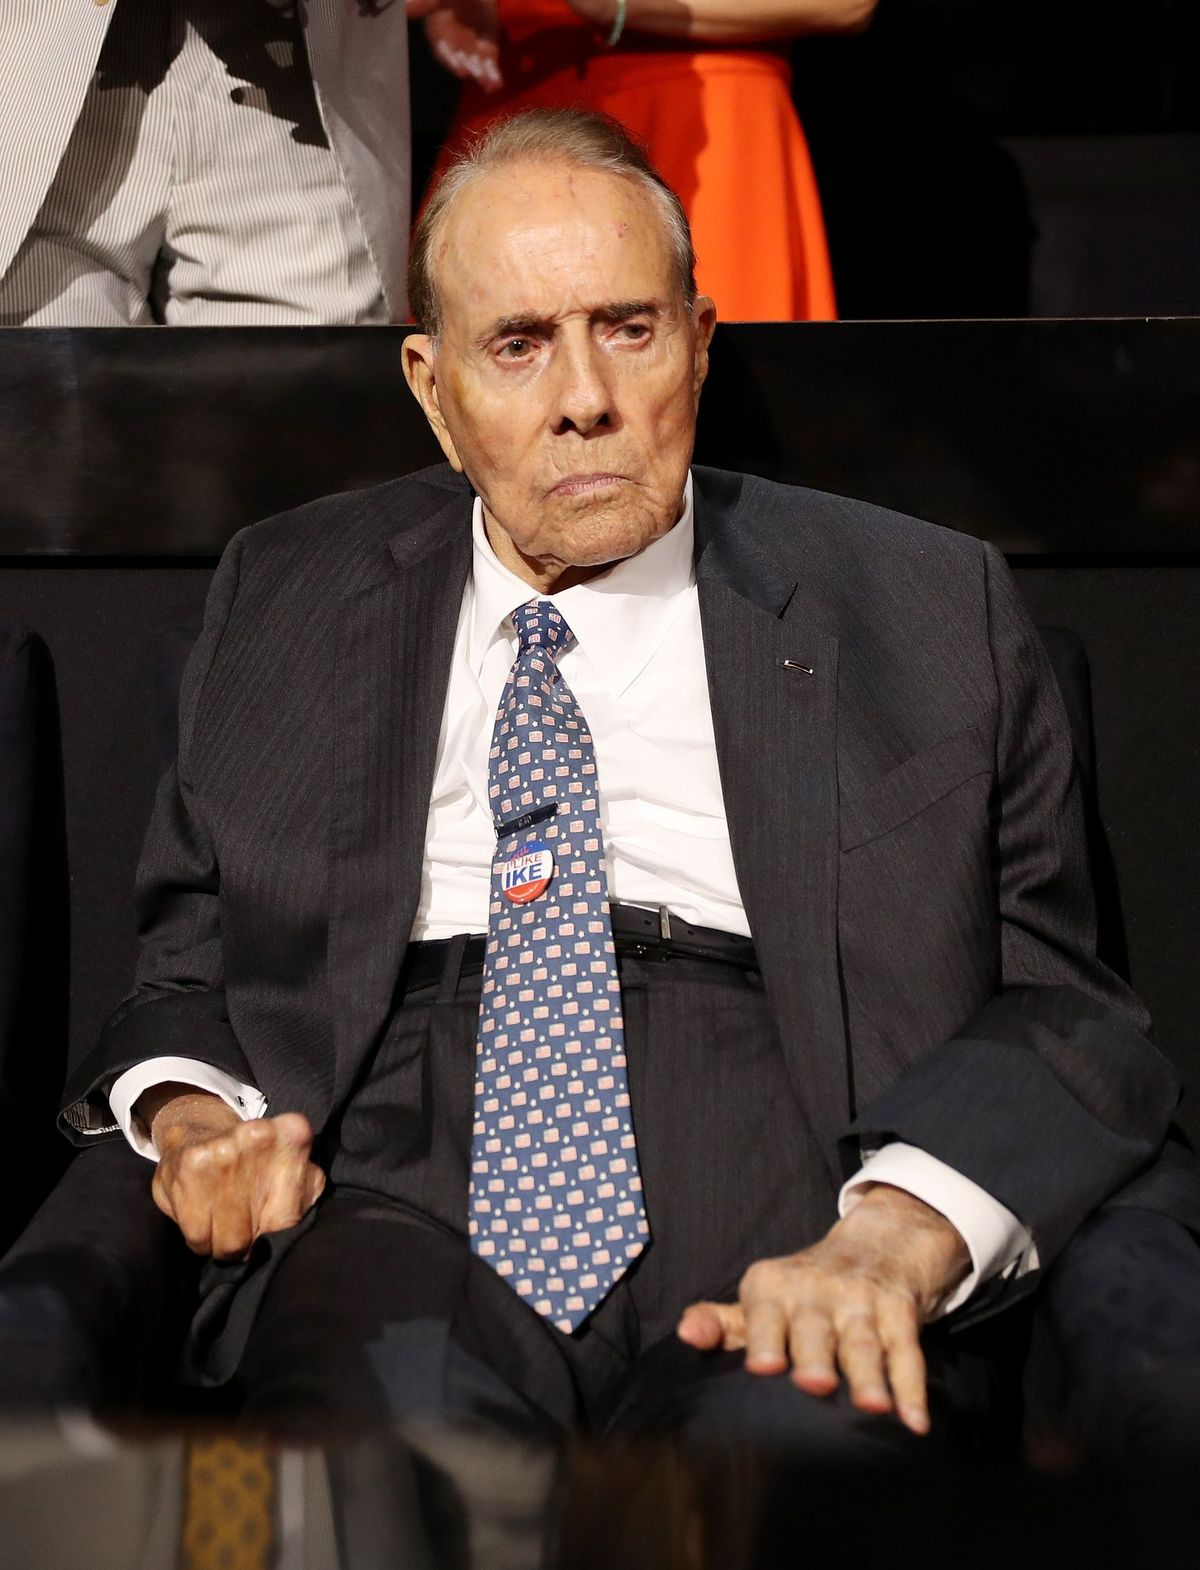 Sen. Bob Dole at the first day of the Republican National Convention on July 18, 2016 | Getty Images